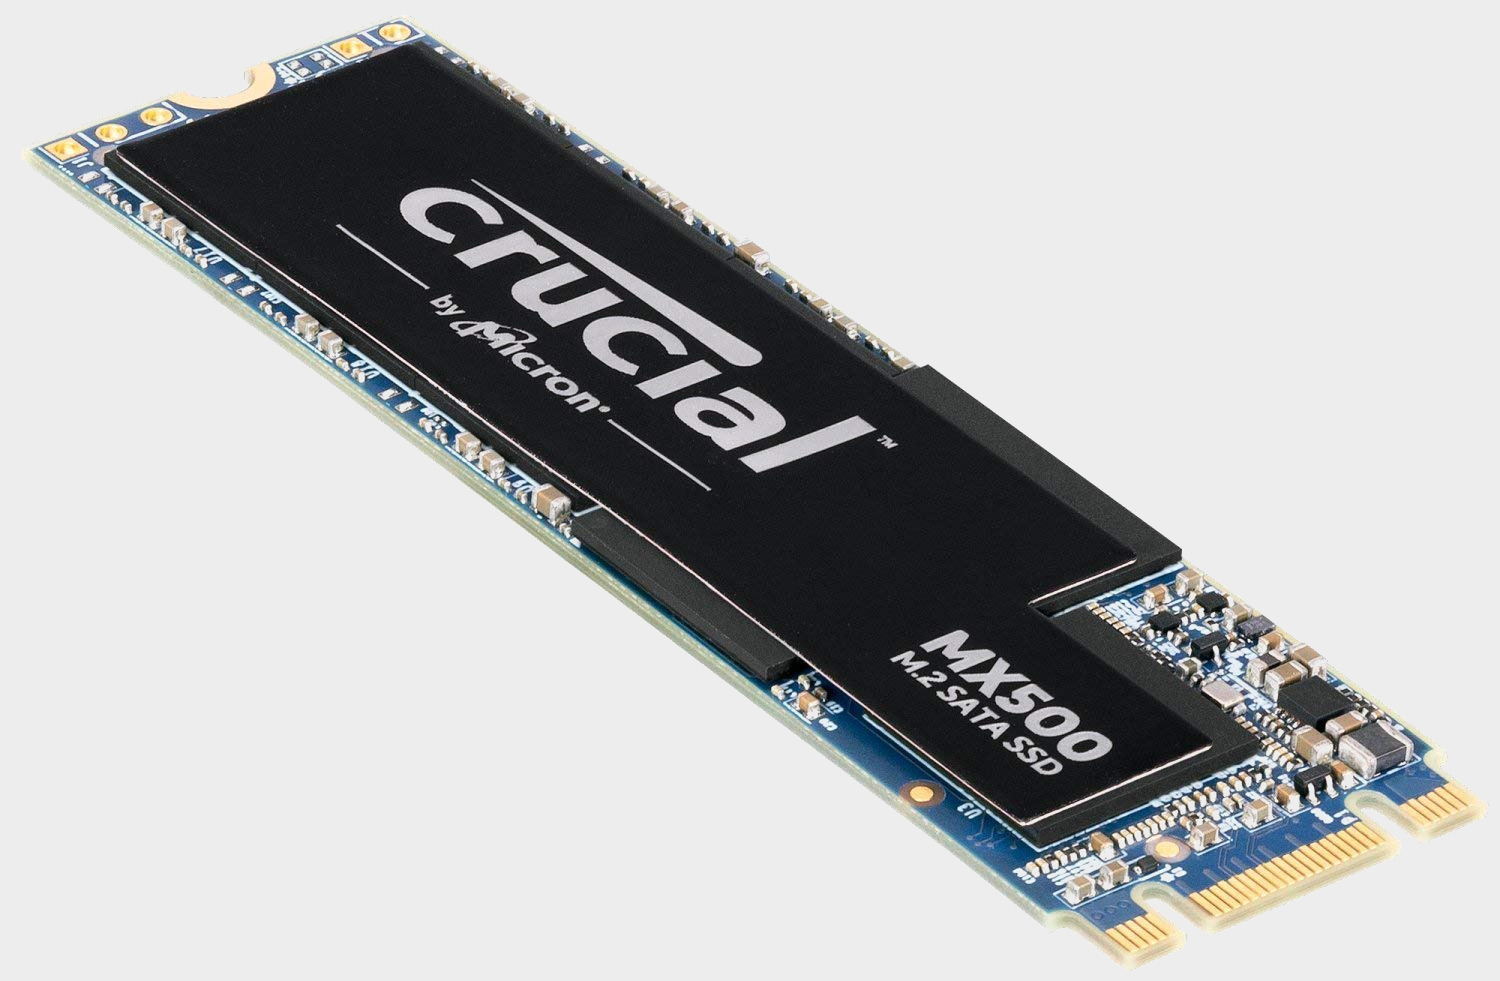 Crucial's 250GB M.2 SSD is just $34 right now | PC Gamer